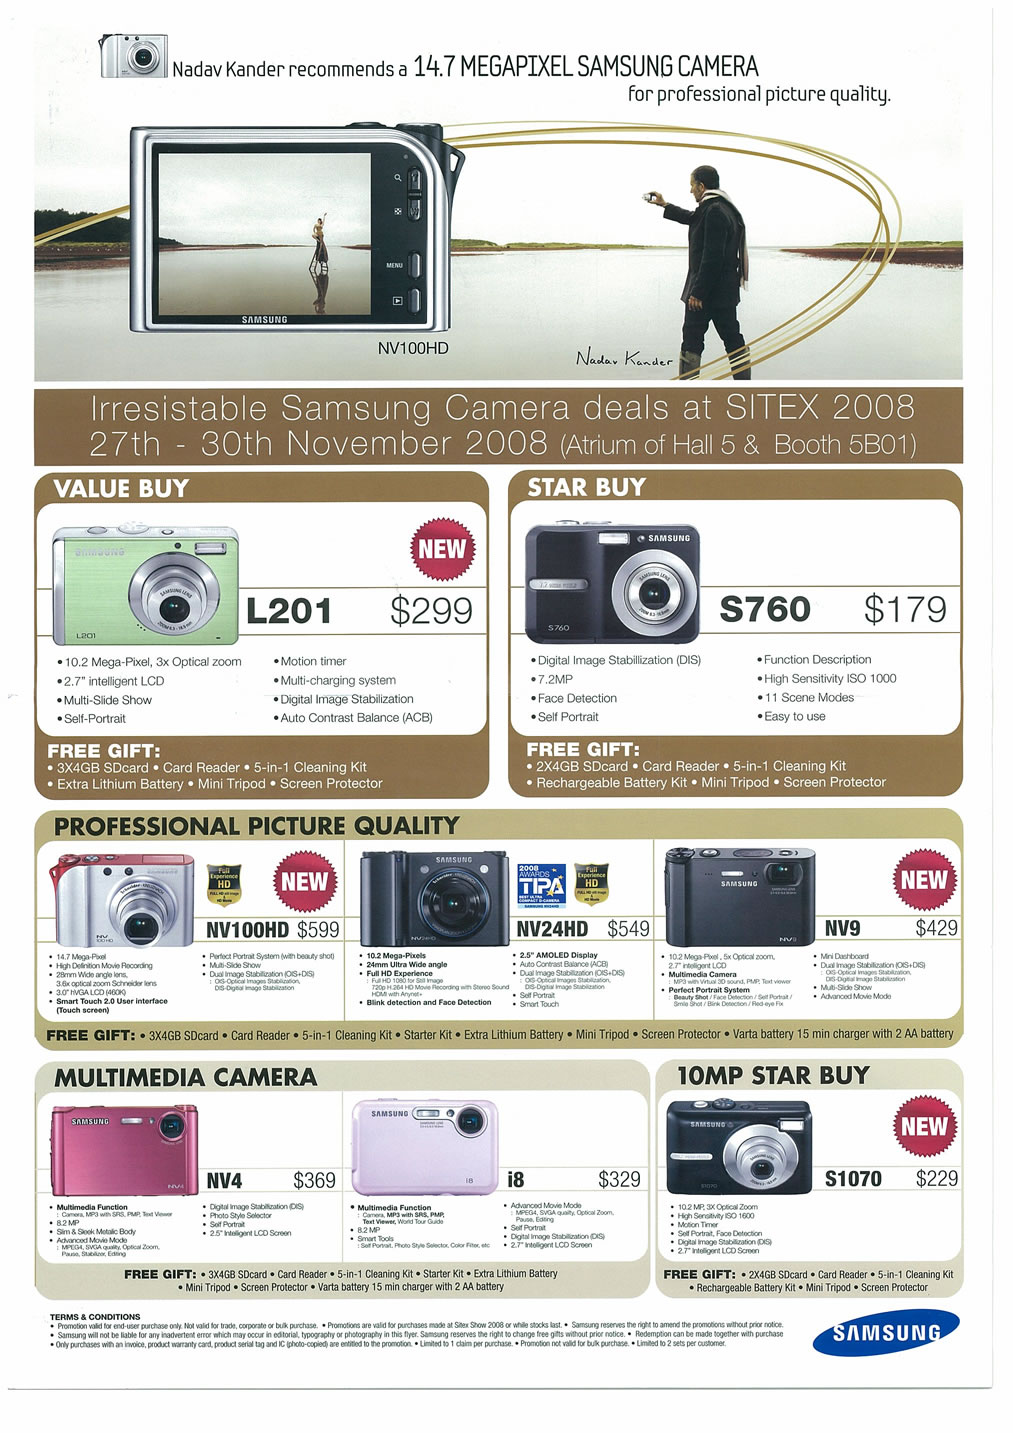 Sitex 2008 price list image brochure of Samsung Cameras Camcorders Page 1 - Vr-zone Tclong